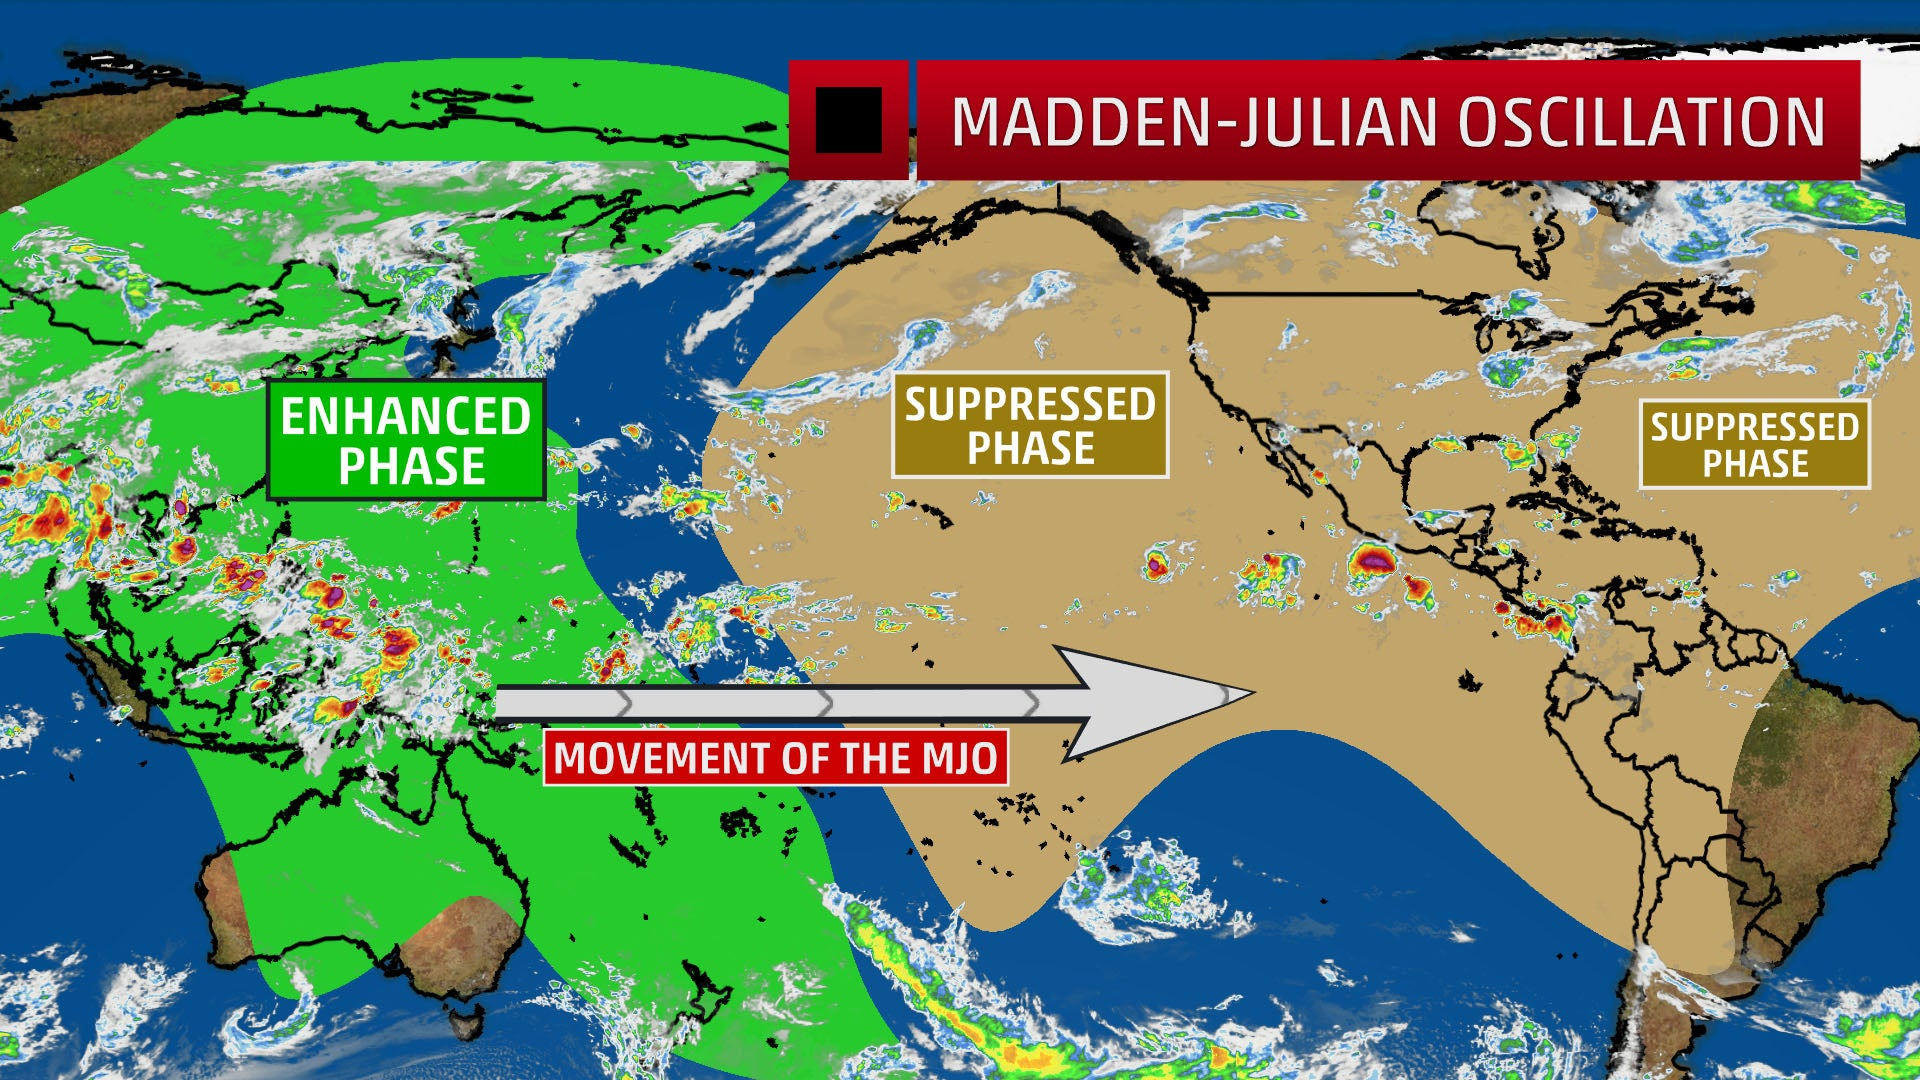 Madden-Julian Oscillation: A Factor in Hurricane Season Forecasting You May Not Have Heard of Before